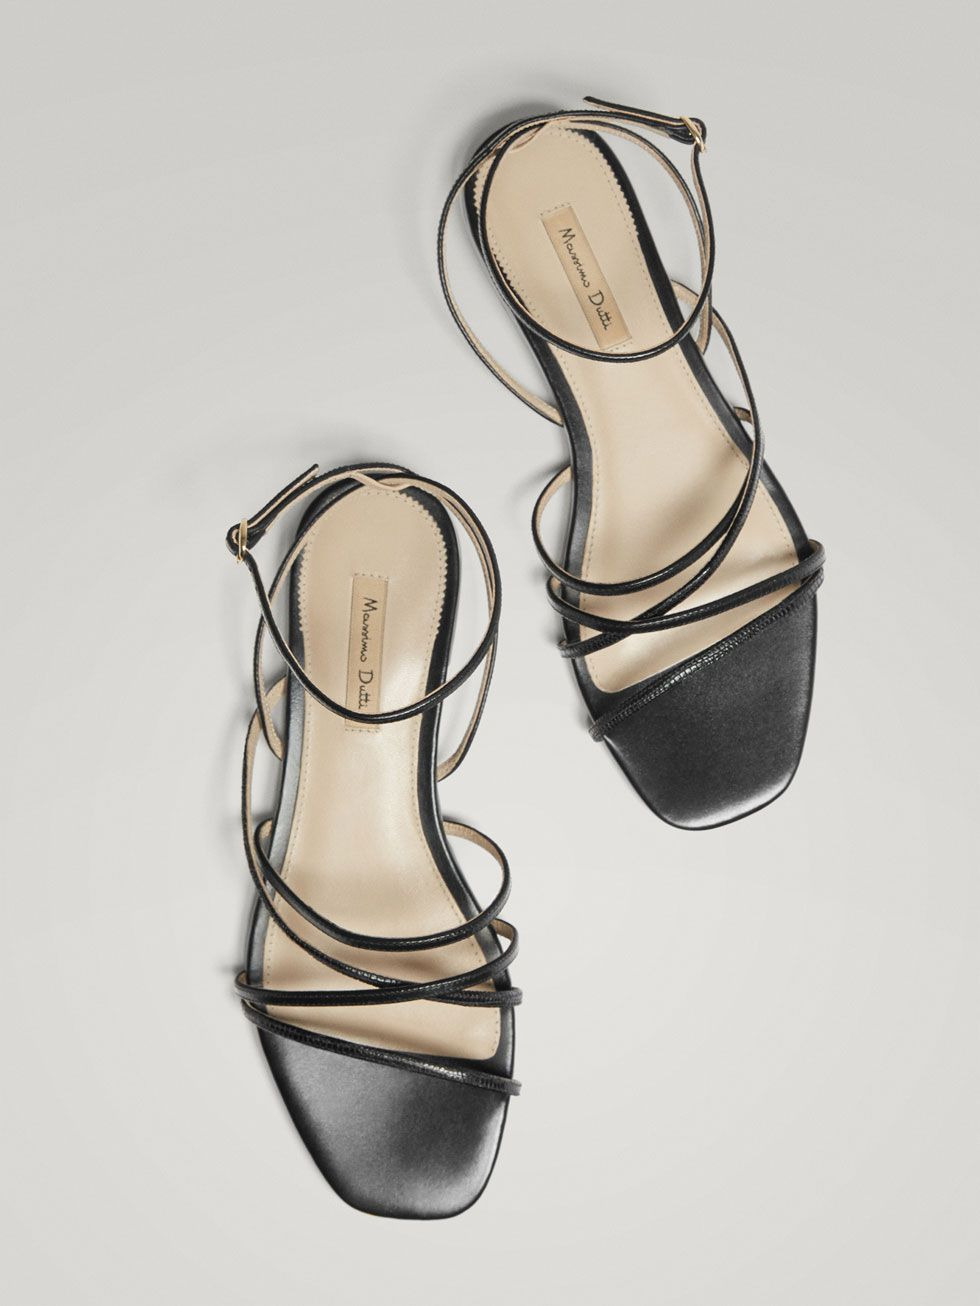 Piel Mujer Massimo Sandalia Negra Dutti EspañaShoes QrhdCts